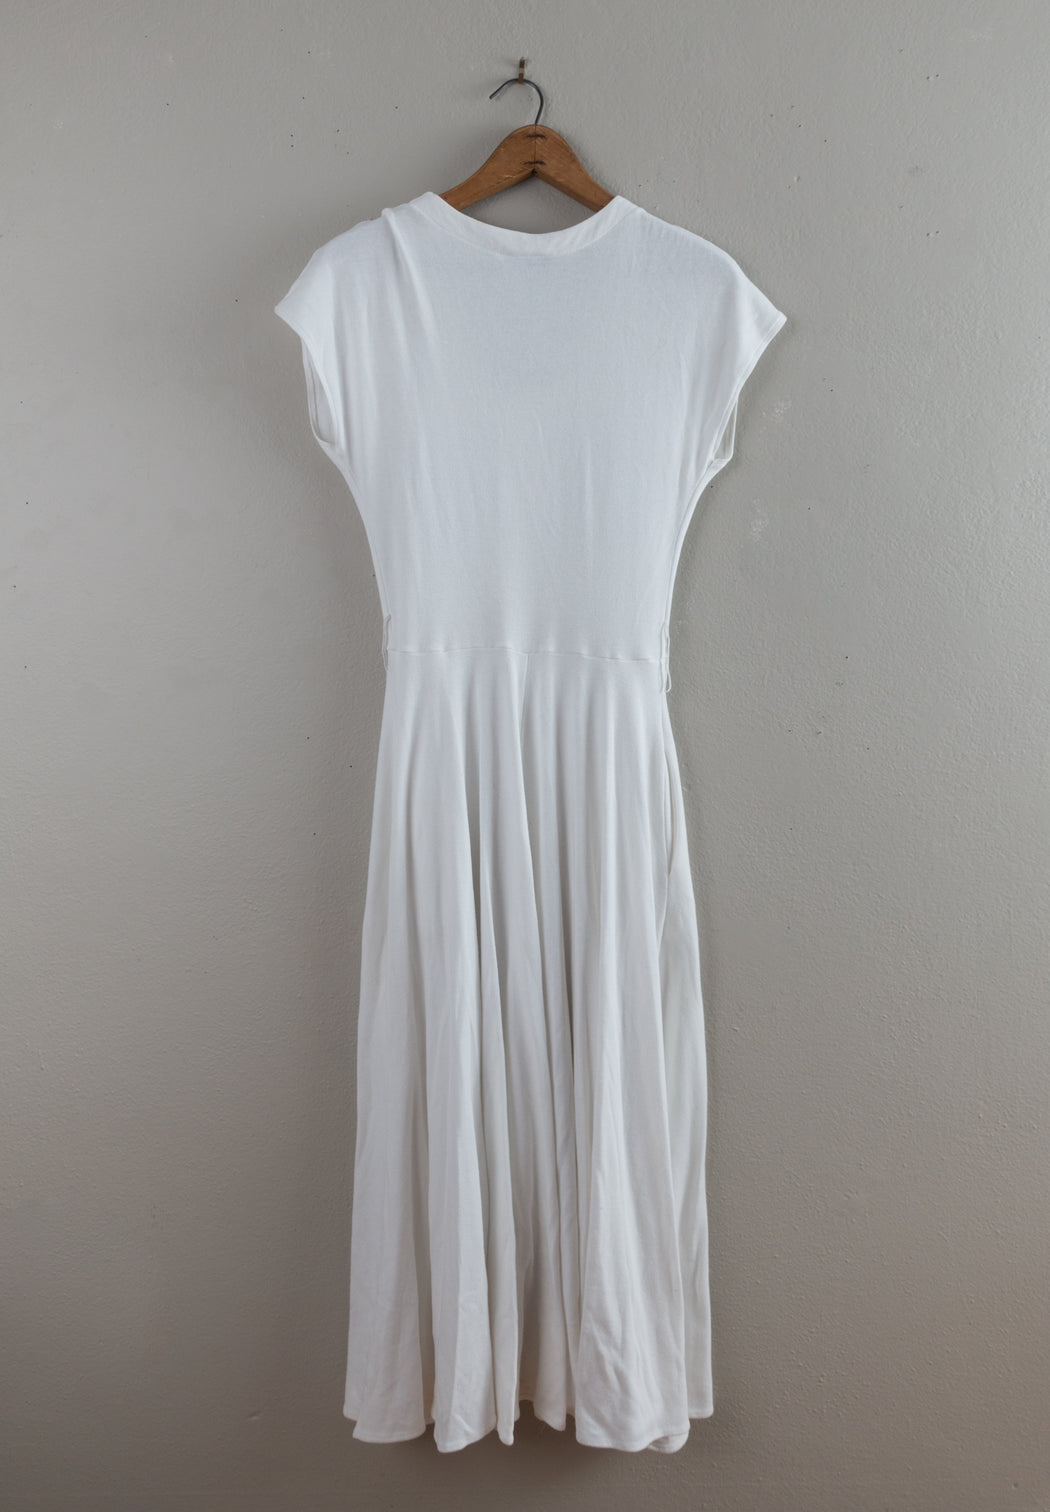 Vintage White Ankle Length Button Down Dress | Diane Von Furstenberg